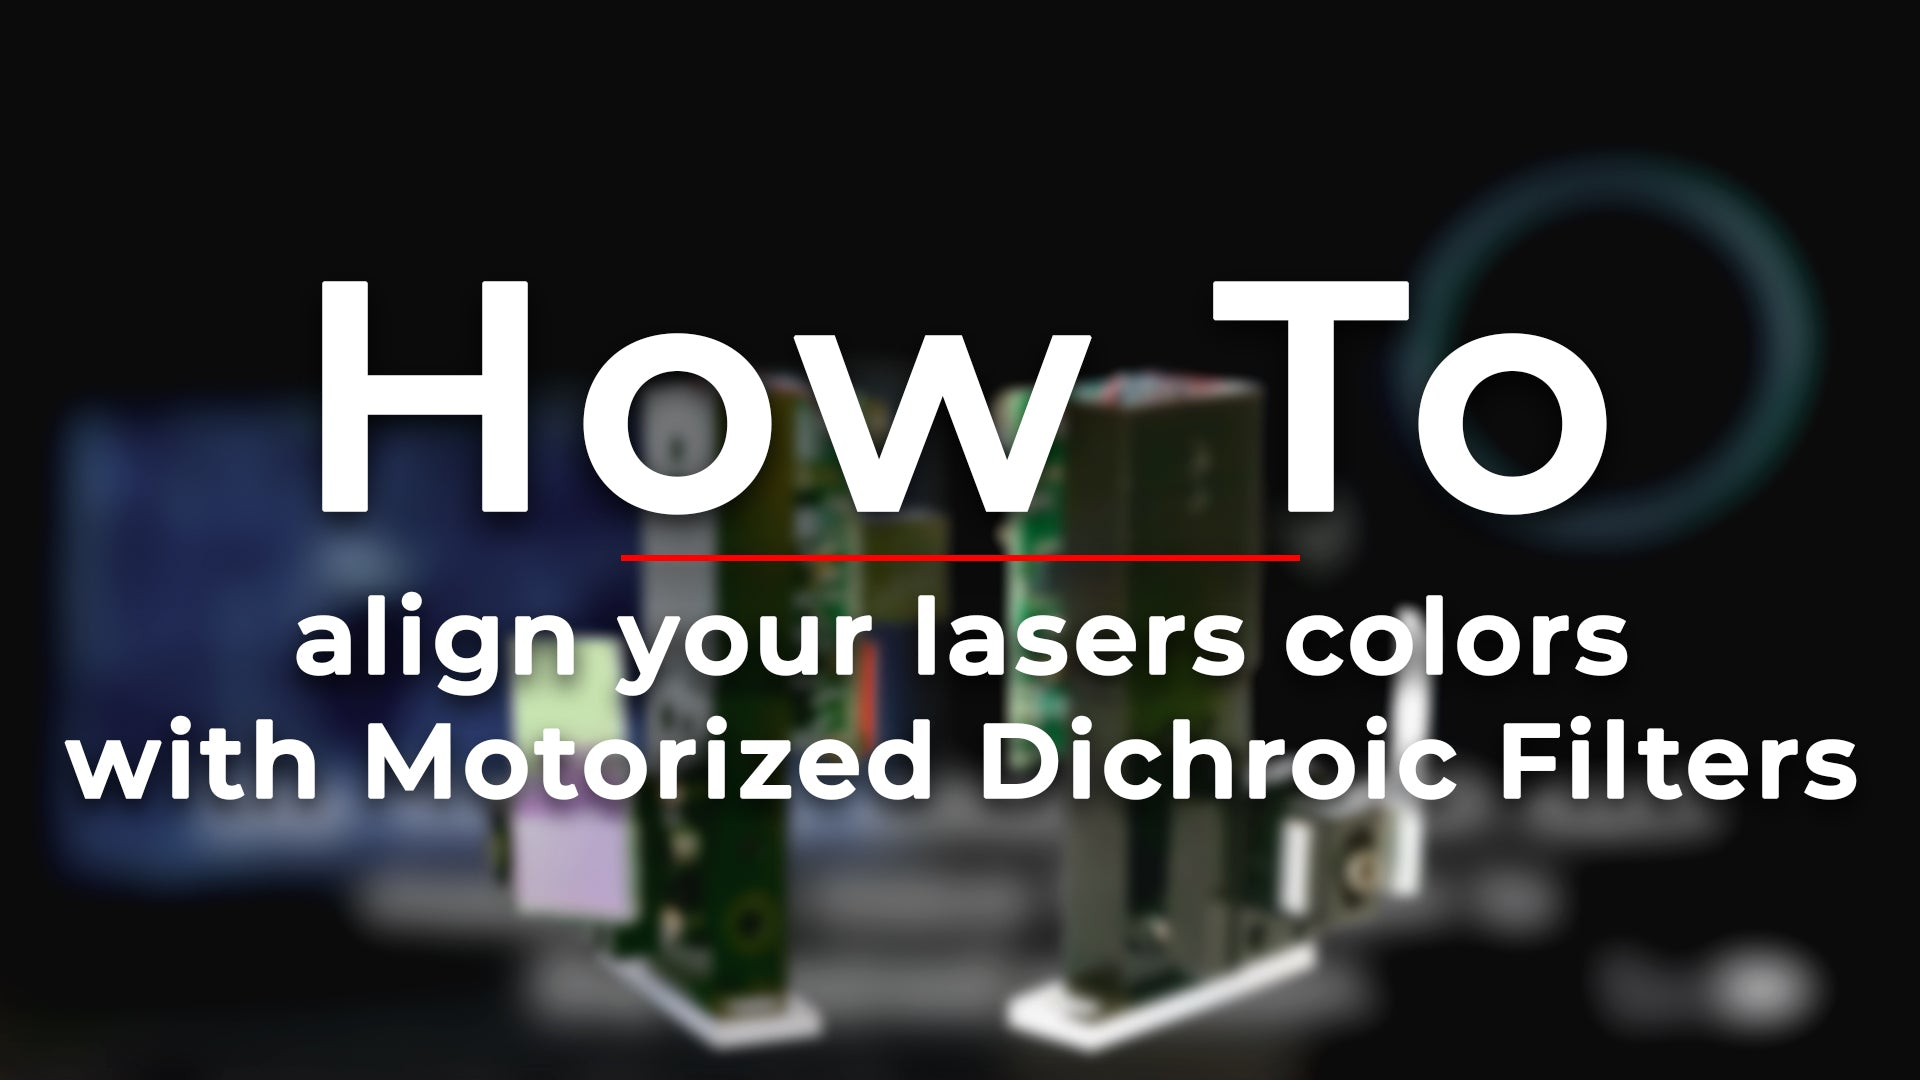 How to align your lasers colors with Motorized Dichroic Filters